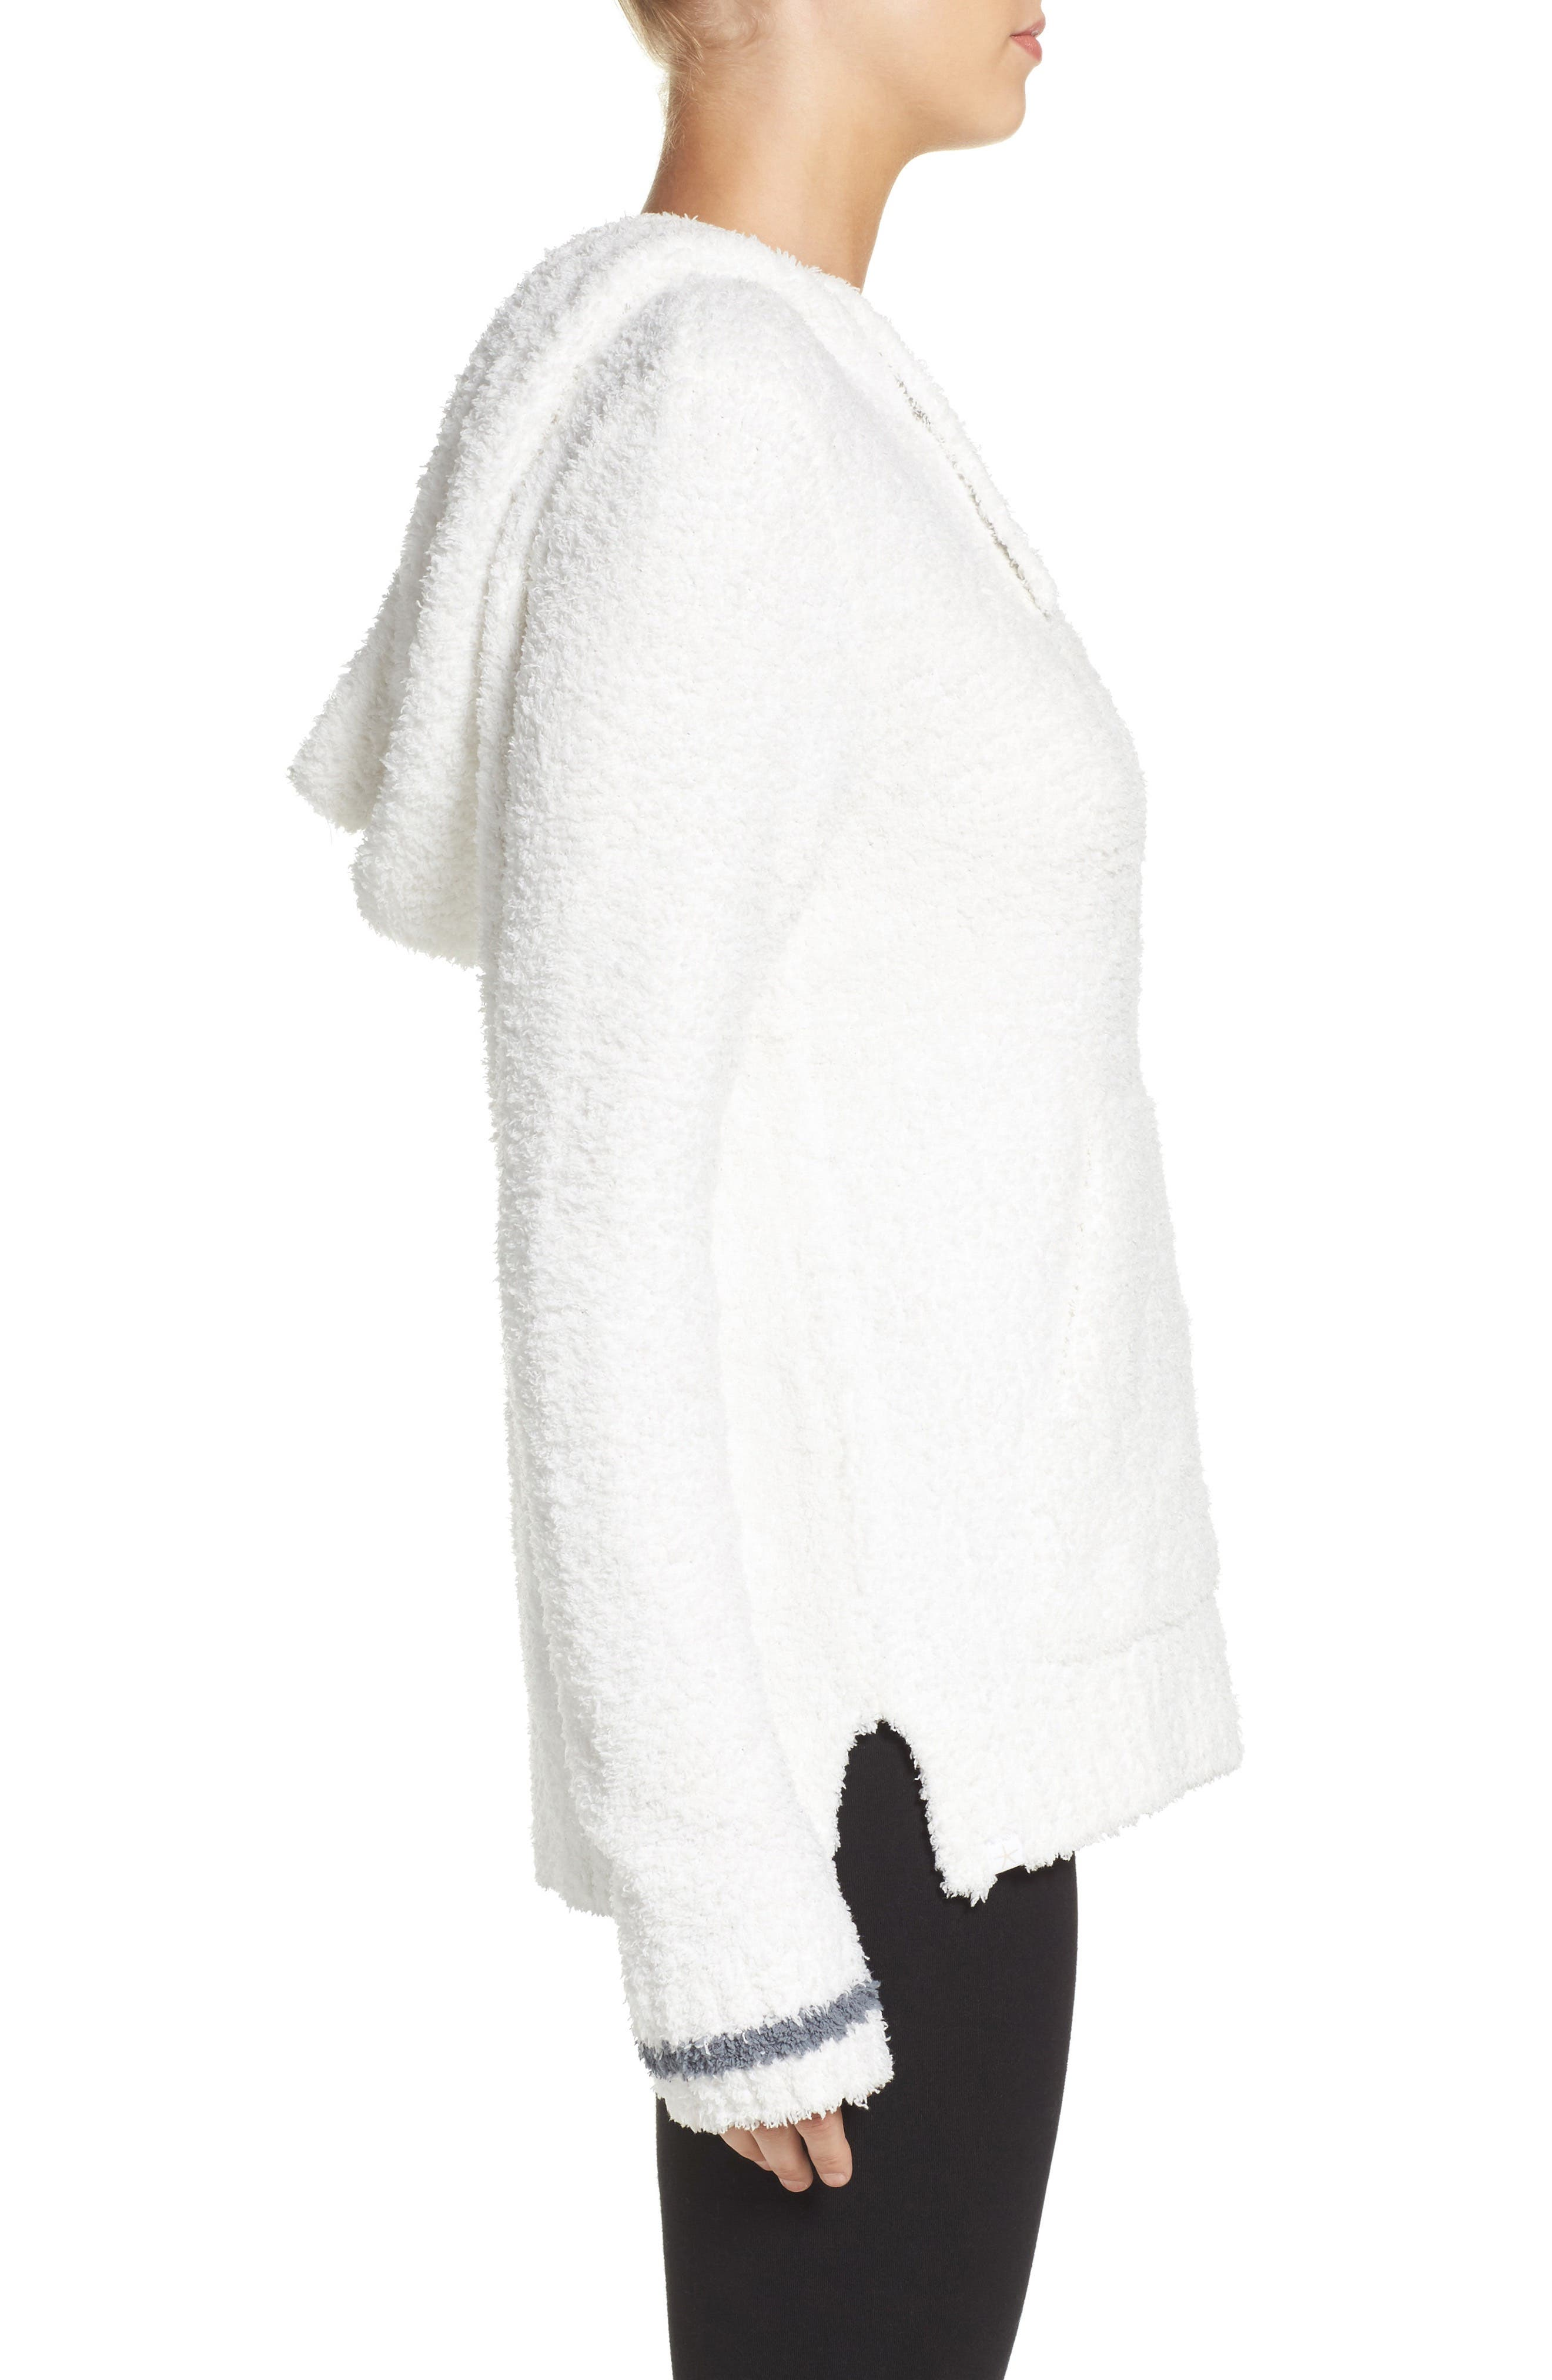 BAREFOOT DREAMS<SUP>®</SUP>,                             Barefoot Dreams Cozychic<sup>®</sup> Baha Lounge Hoodie,                             Alternate thumbnail 3, color,                             WHITE/ GRAPHITE STRIPE